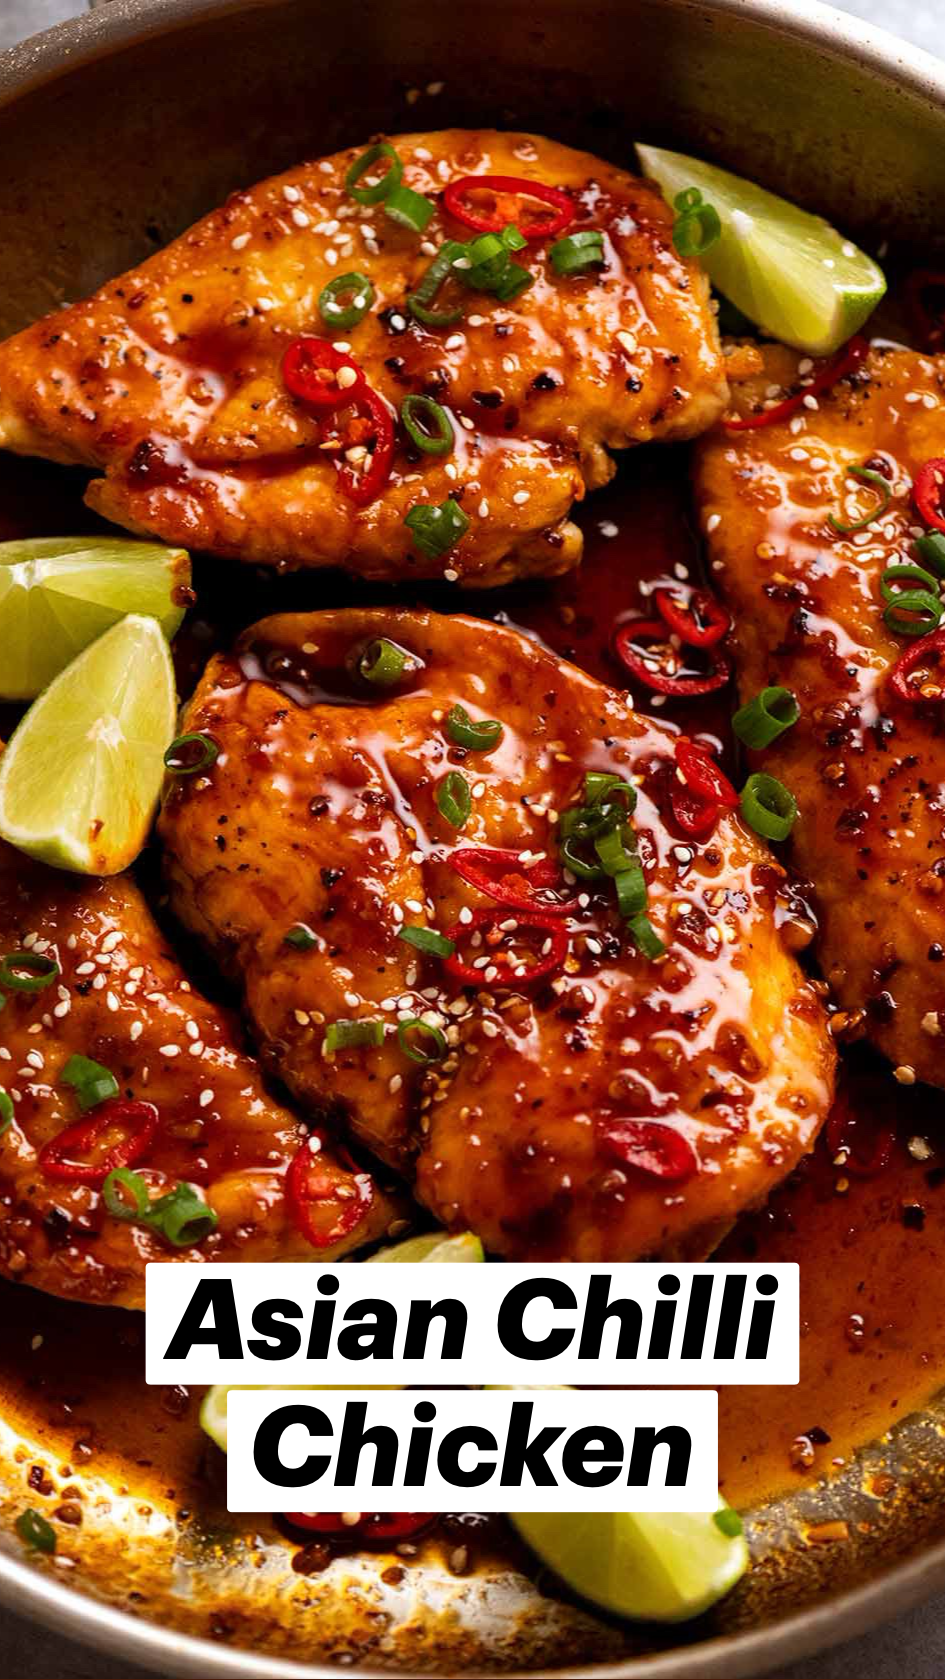 Asian Chilli Chicken